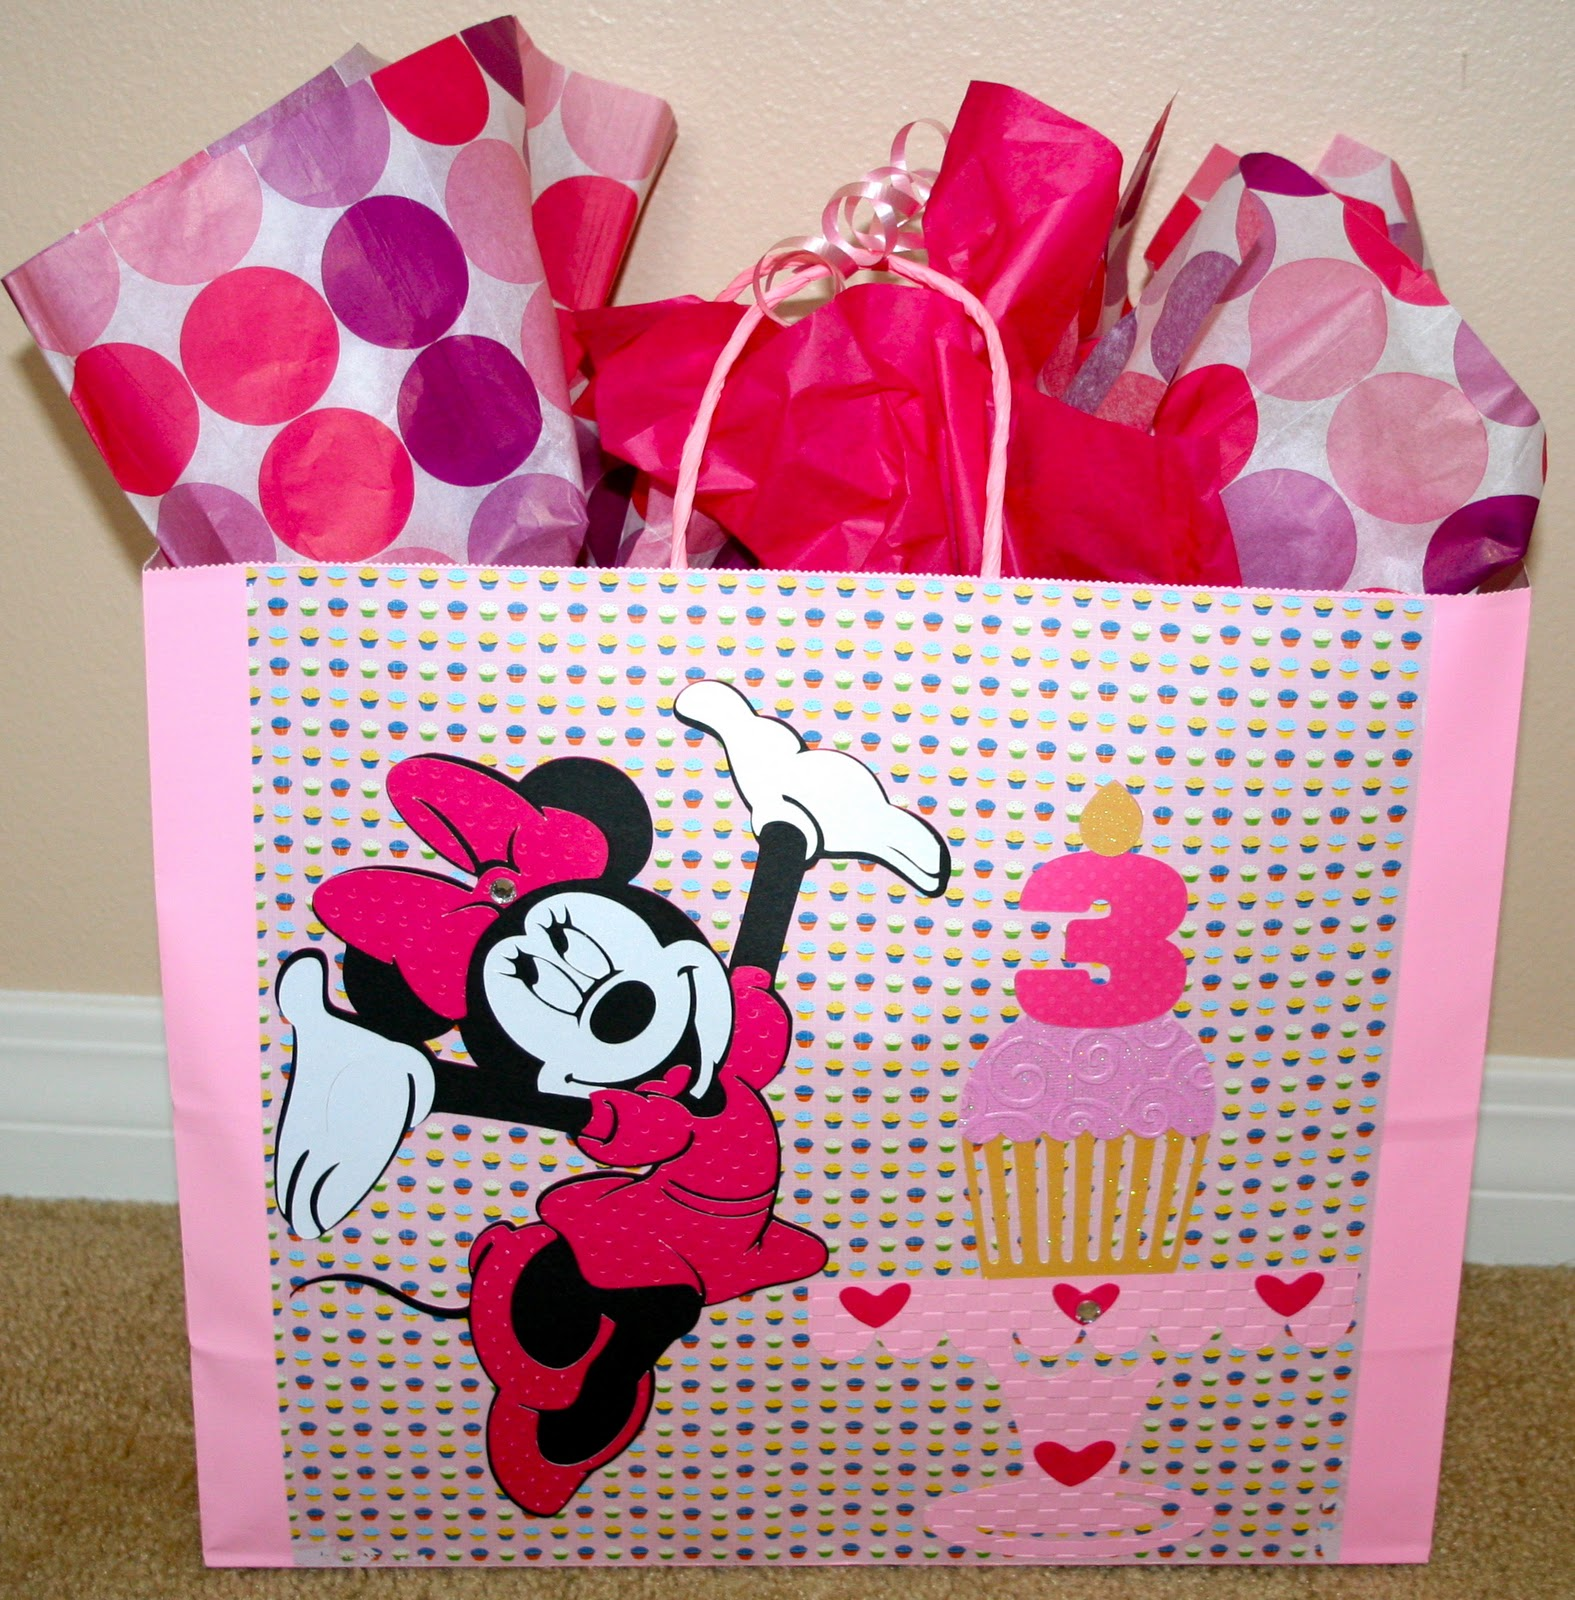 to scrap minnie mouse cards gift bag